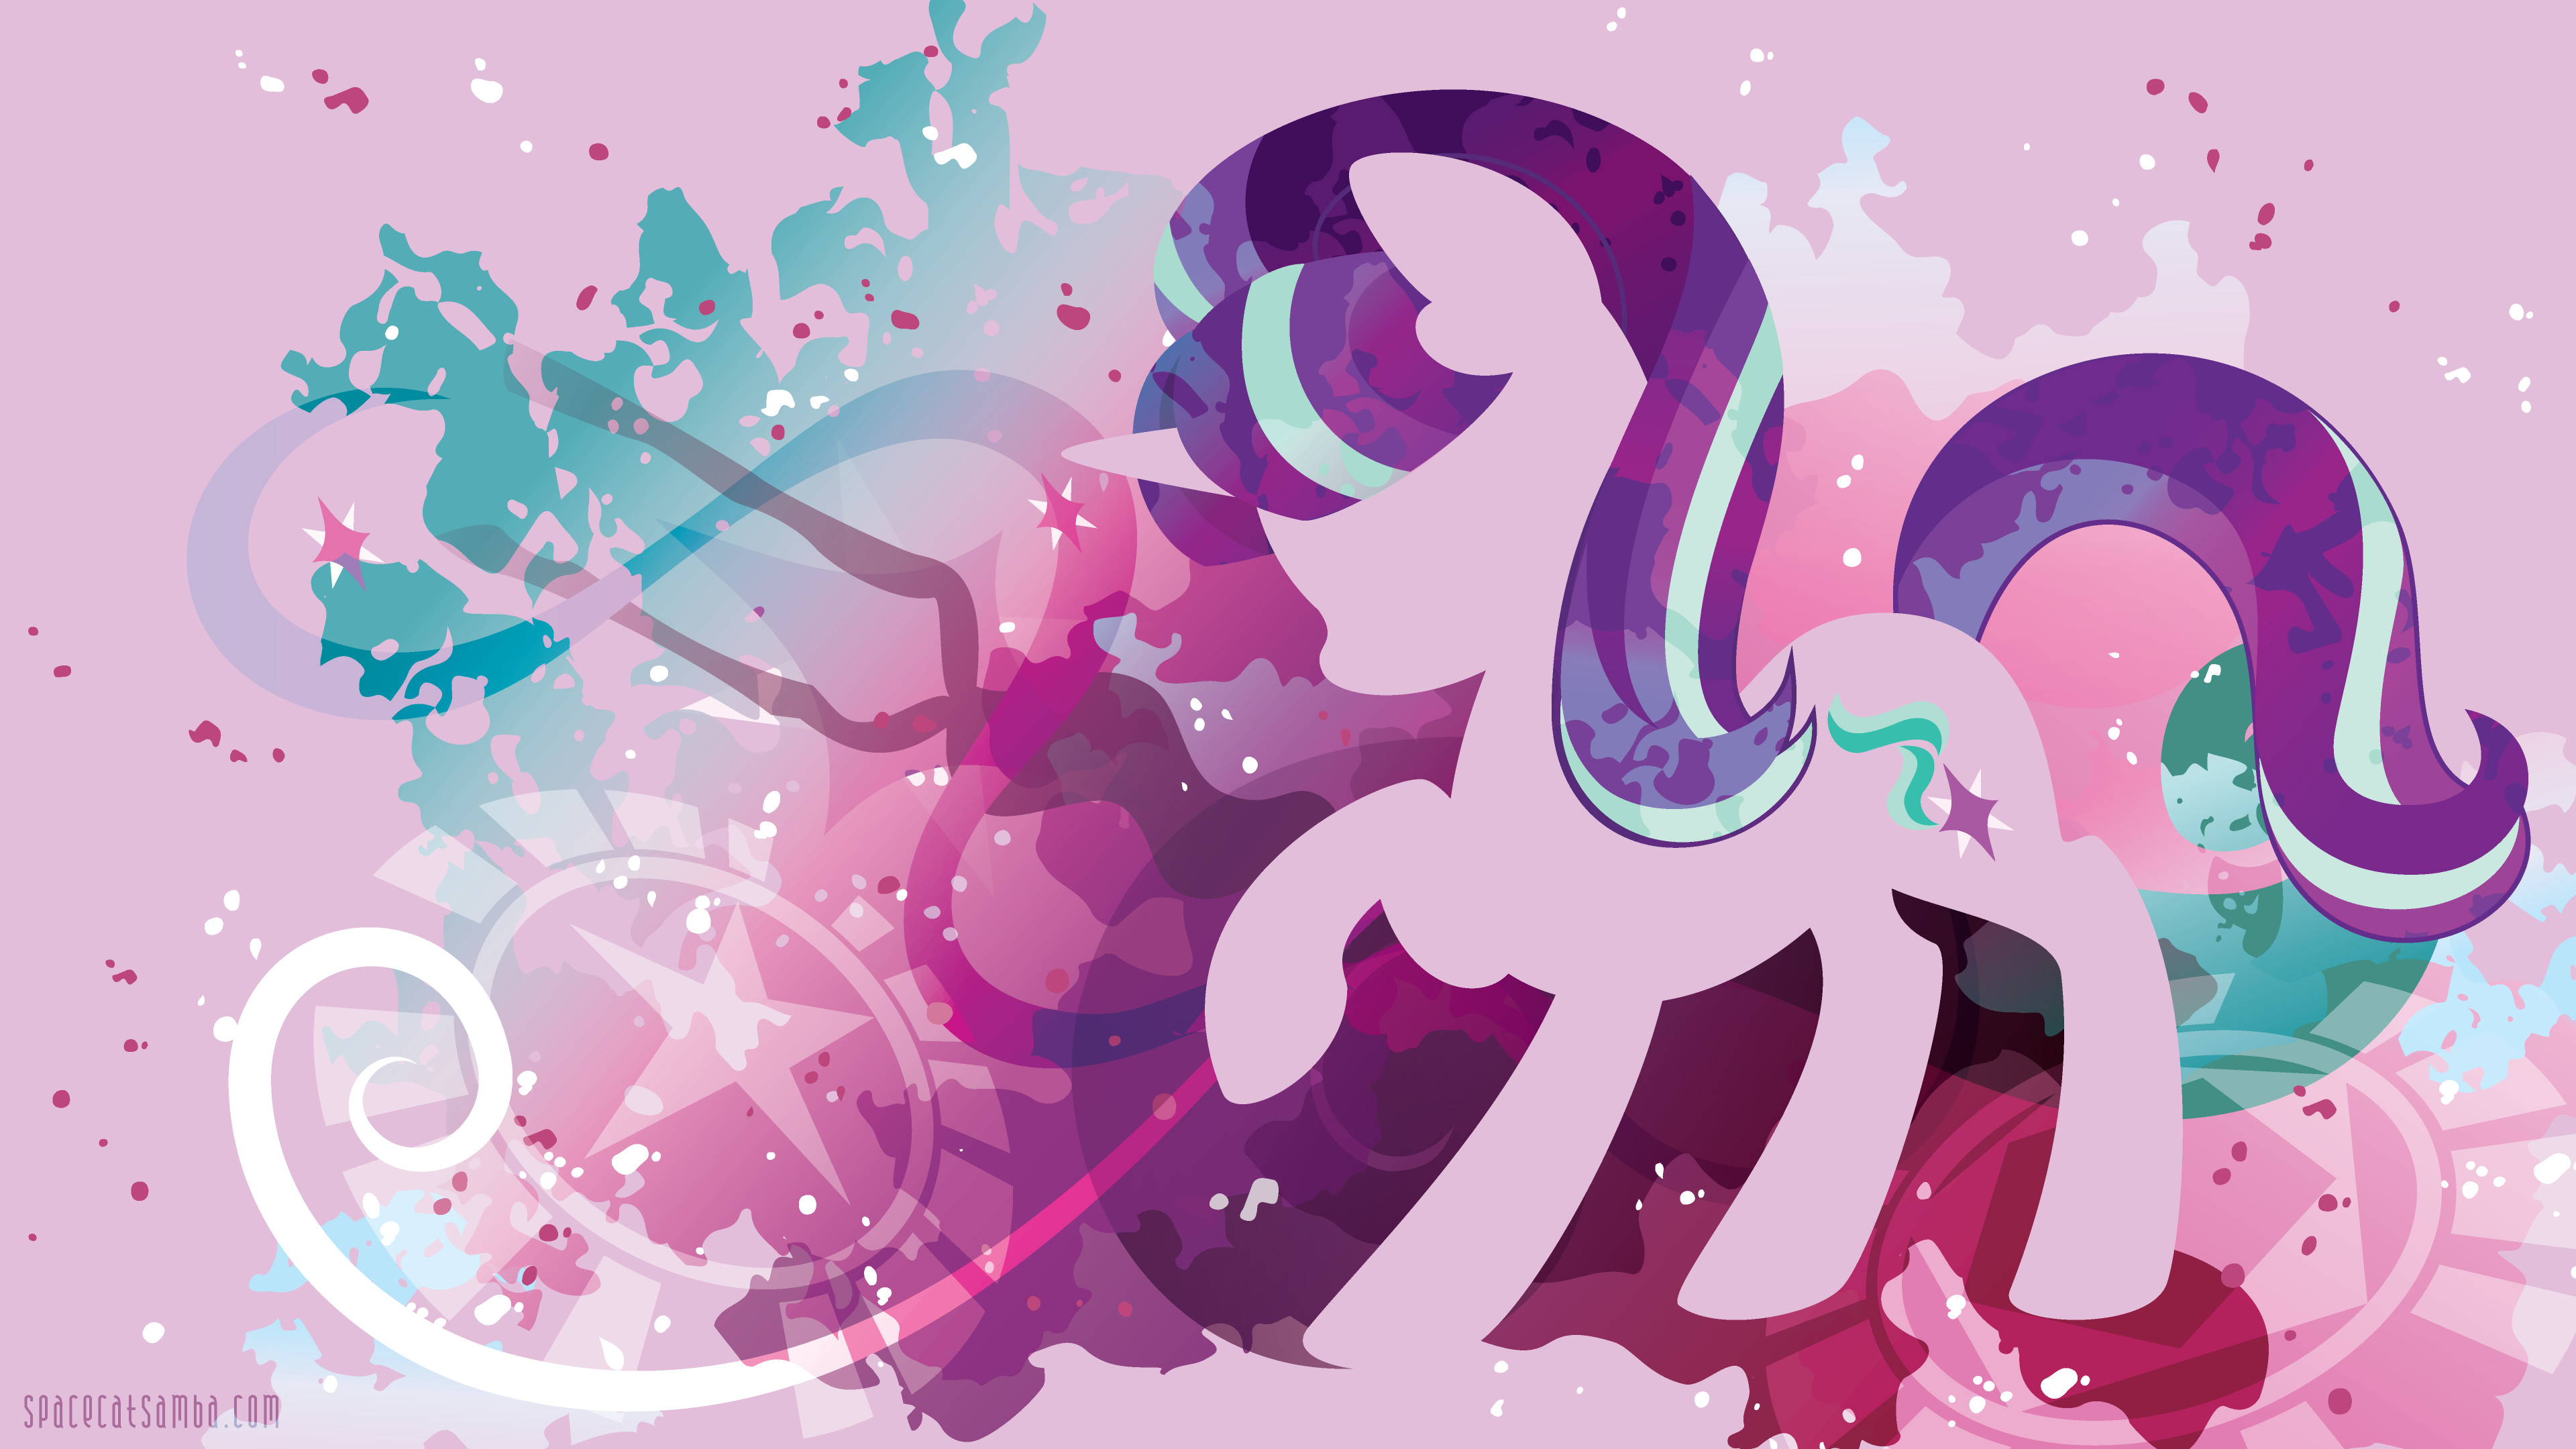 3840x2160 starlight-glimmer-stream-wall-.png (3840×2160) | Kailyn |  Pinterest | MLP, Pony and Equestria girls